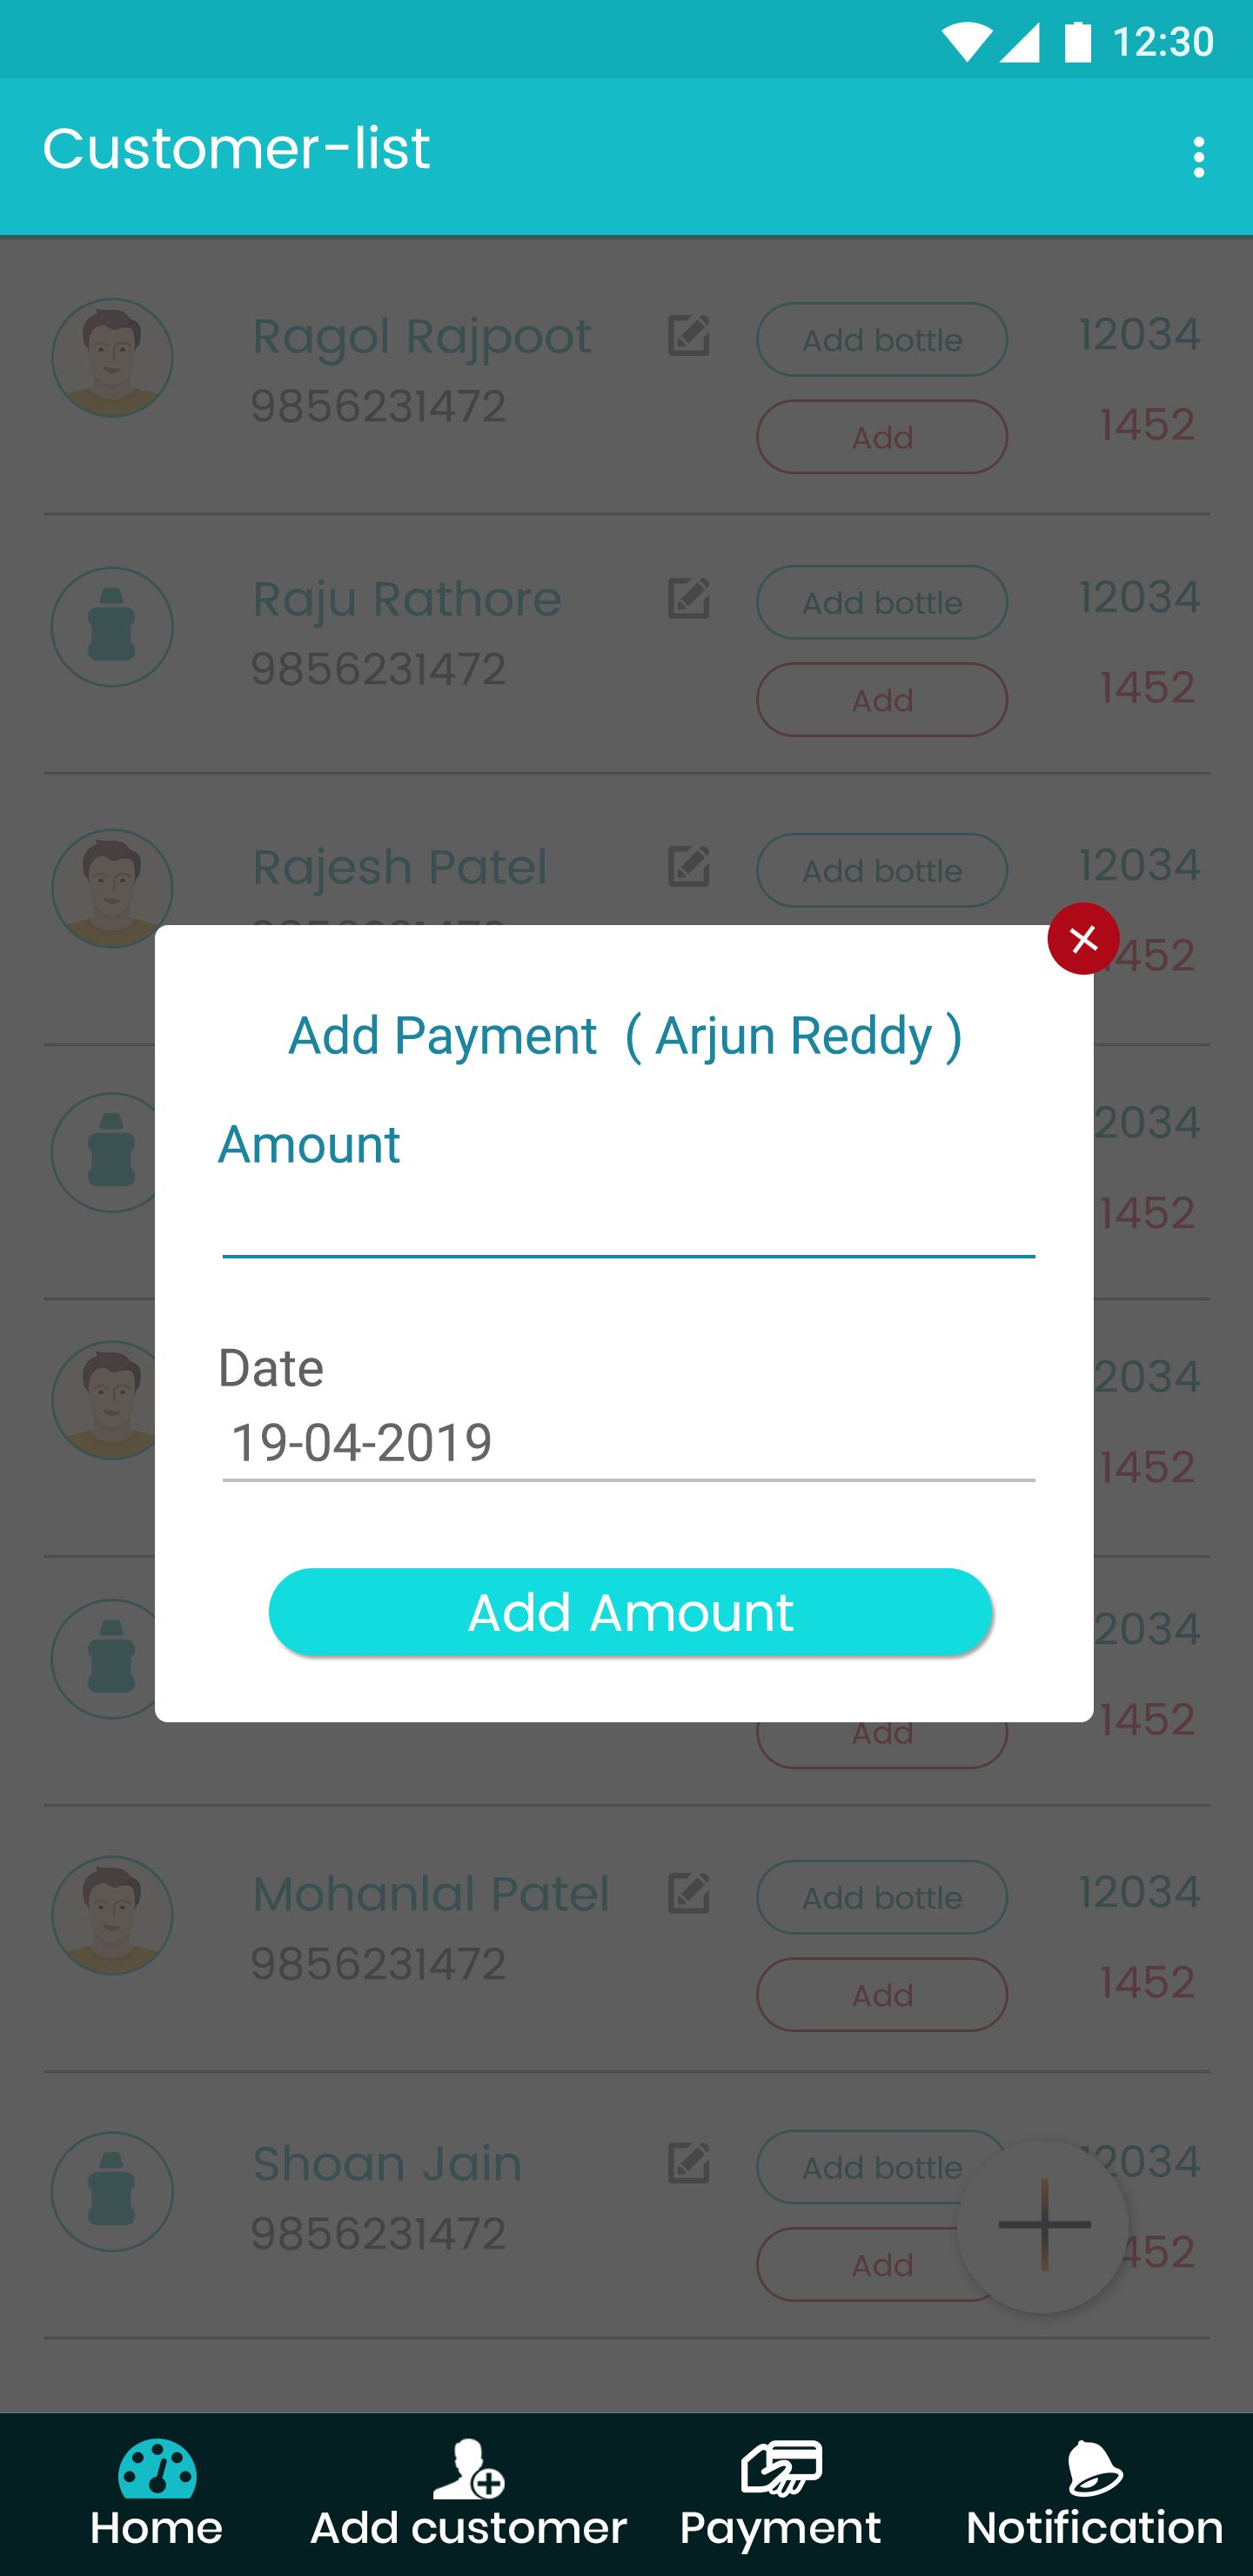 customer can add Payment